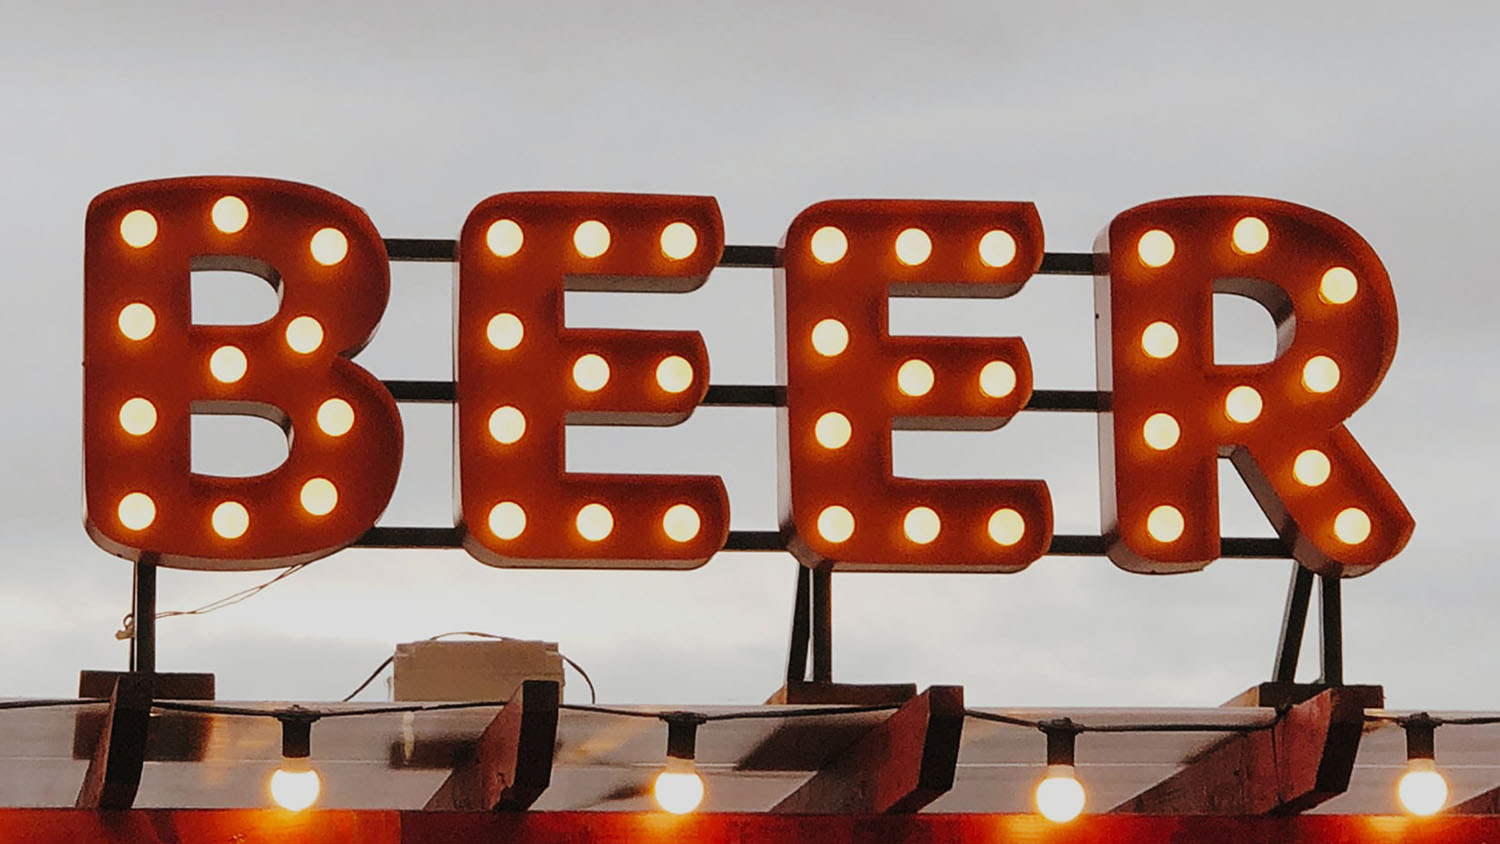 sign that says beer